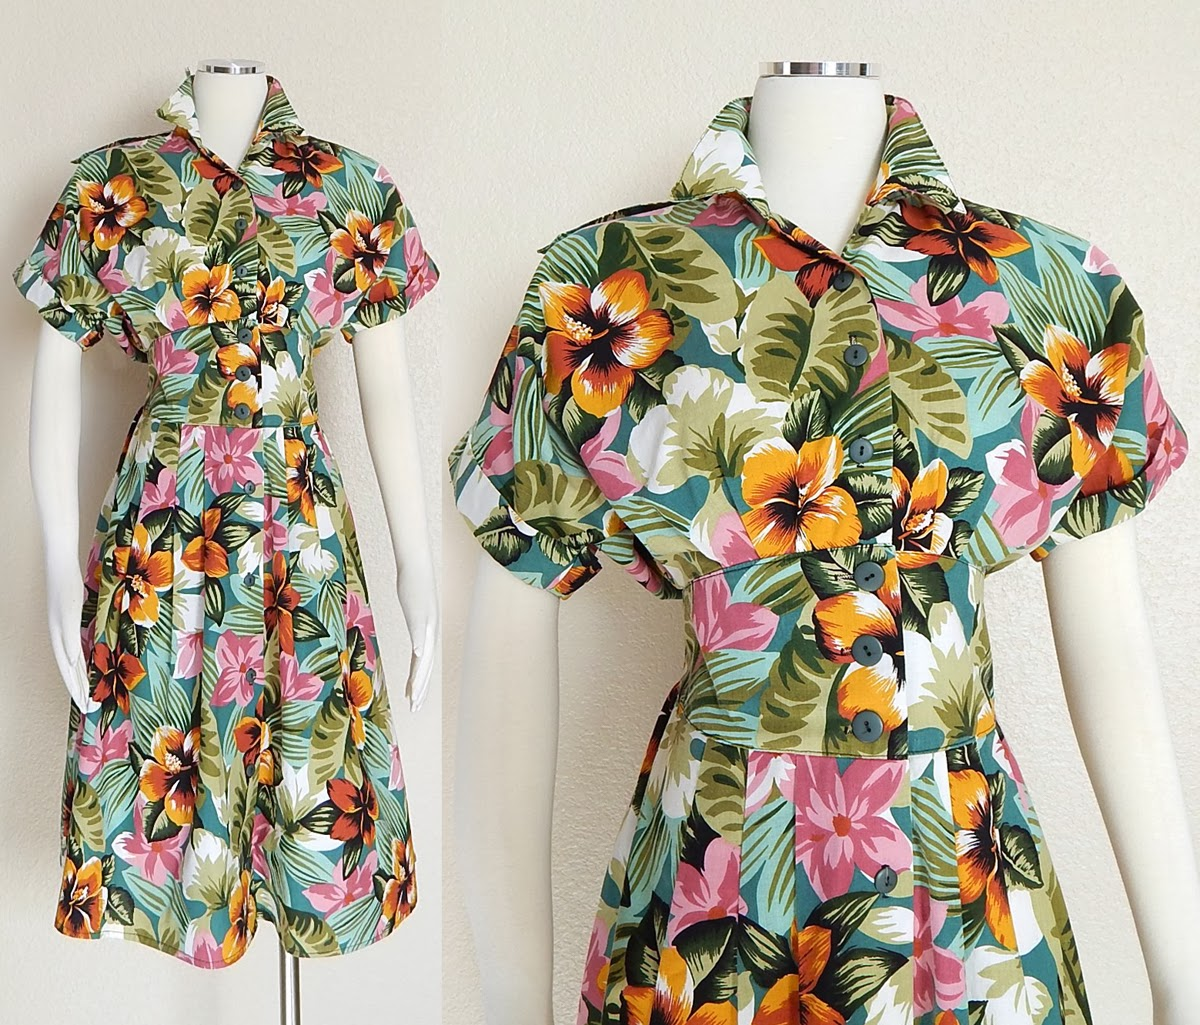 https://www.etsy.com/listing/176638429/vintage-80s-full-skirt-tropical-floral?ref=shop_home_active_2